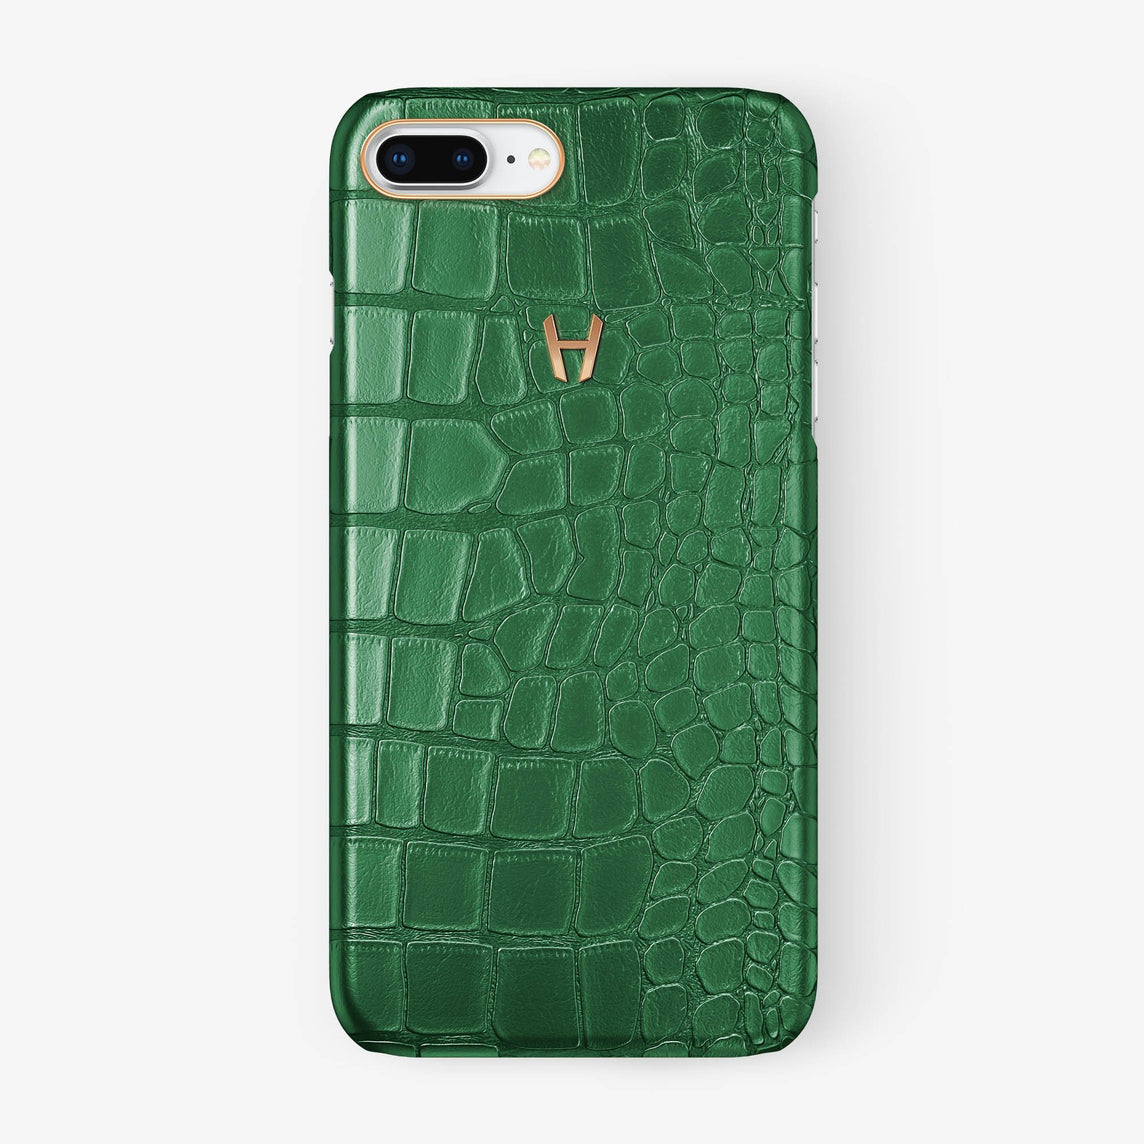 Alligator [iPhone Case] [model:iphone-7p-8p-case] [colour:green] [finishing:rose-gold] - Hadoro